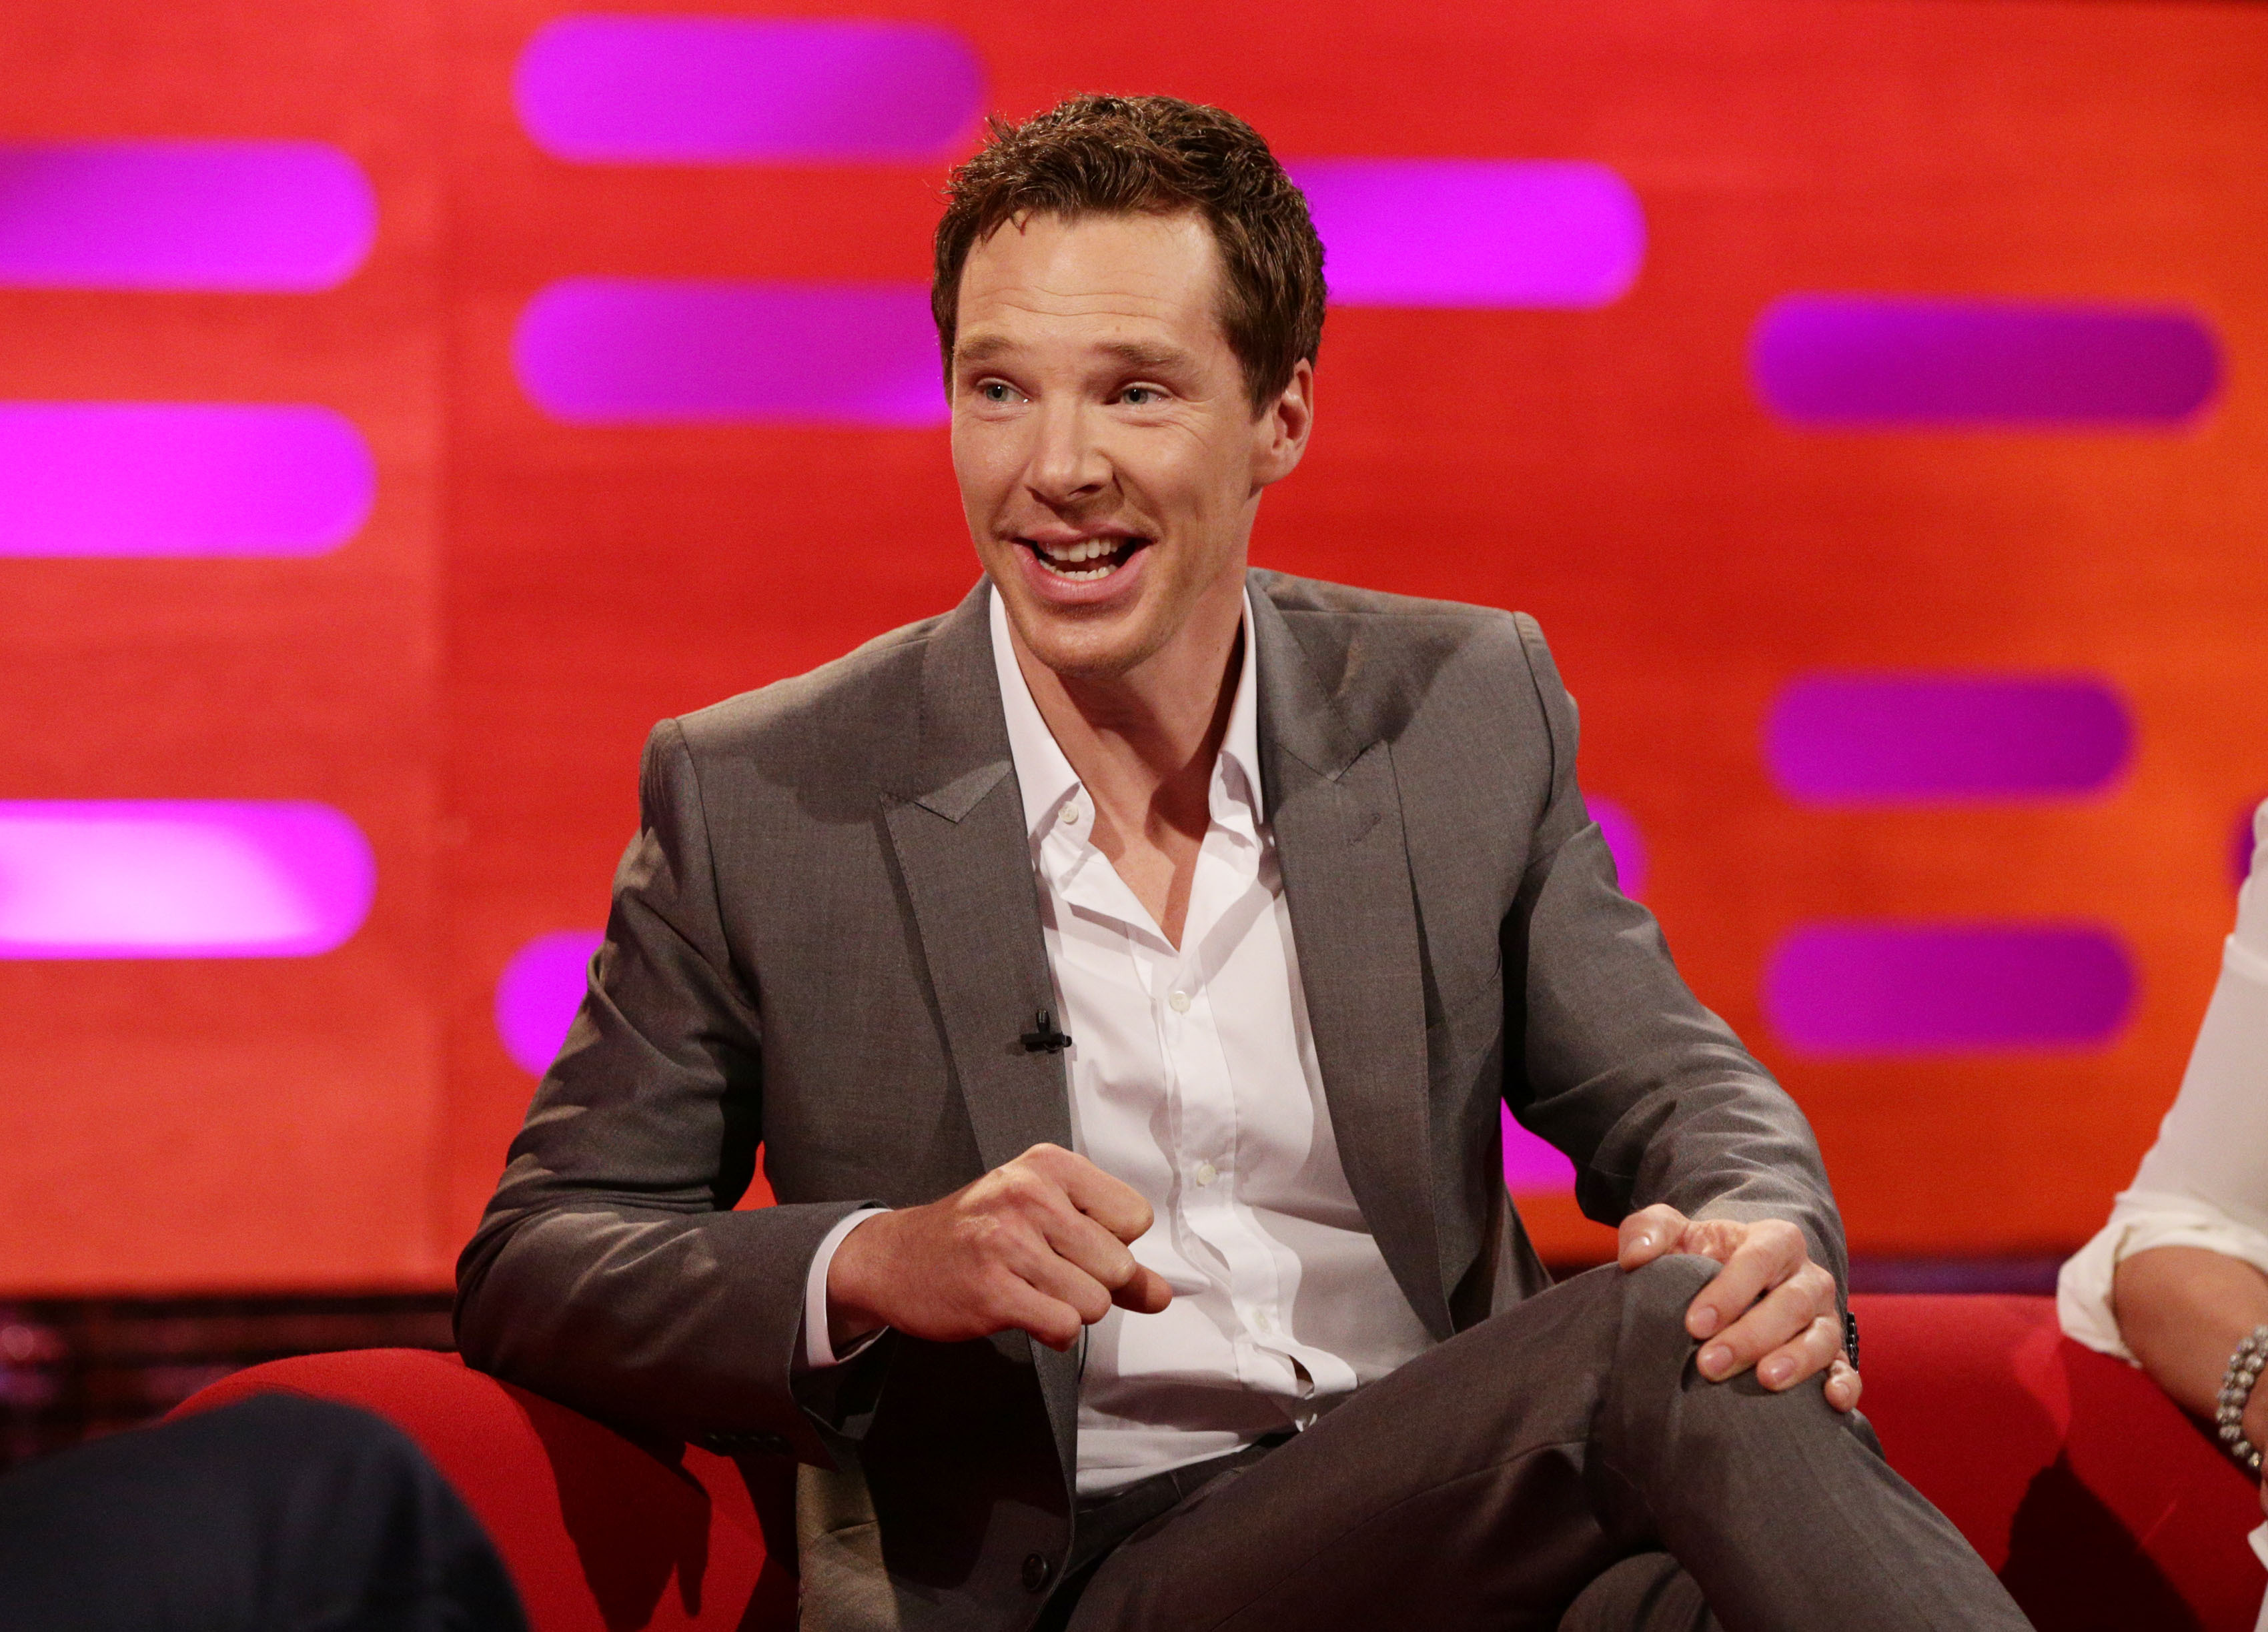 Graham Norton Show - London. Benedict Cumberbatch during filming of the Graham Norton Show at the London Studios, London, to be aired on BBC One on Friday evening. Picture date: Thursday October 23, 2014. Photo credit should read: Yui Mok/PA Wire URN:21270396